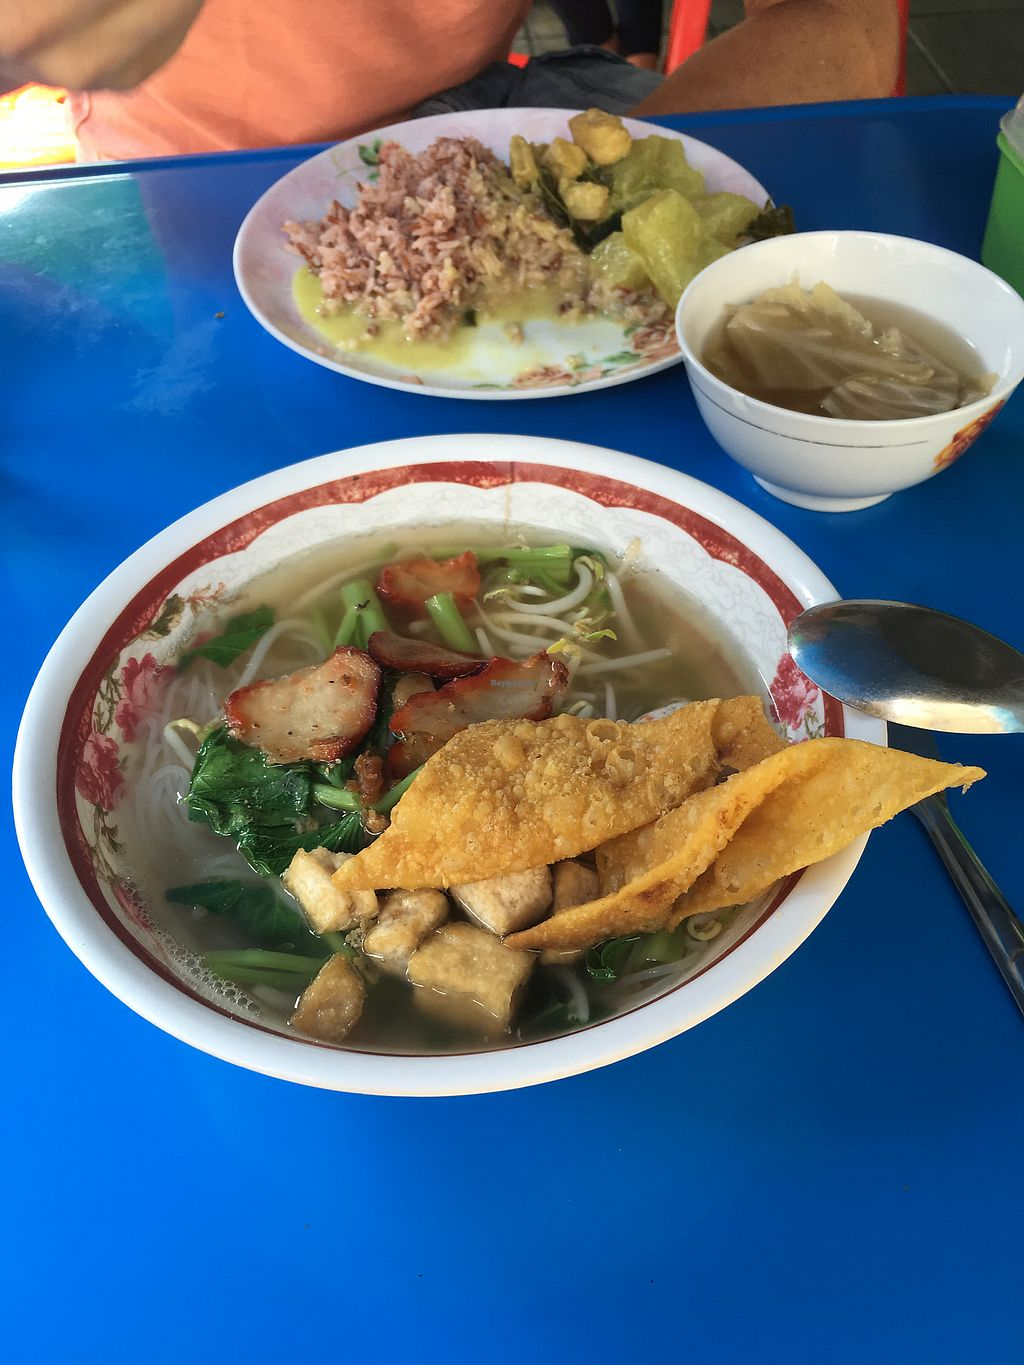 """Photo of Pan Road - Vegan Food Cart  by <a href=""""/members/profile/anneclara"""">anneclara</a> <br/>Noodle soup and green curry  <br/> March 26, 2018  - <a href='/contact/abuse/image/88695/376250'>Report</a>"""